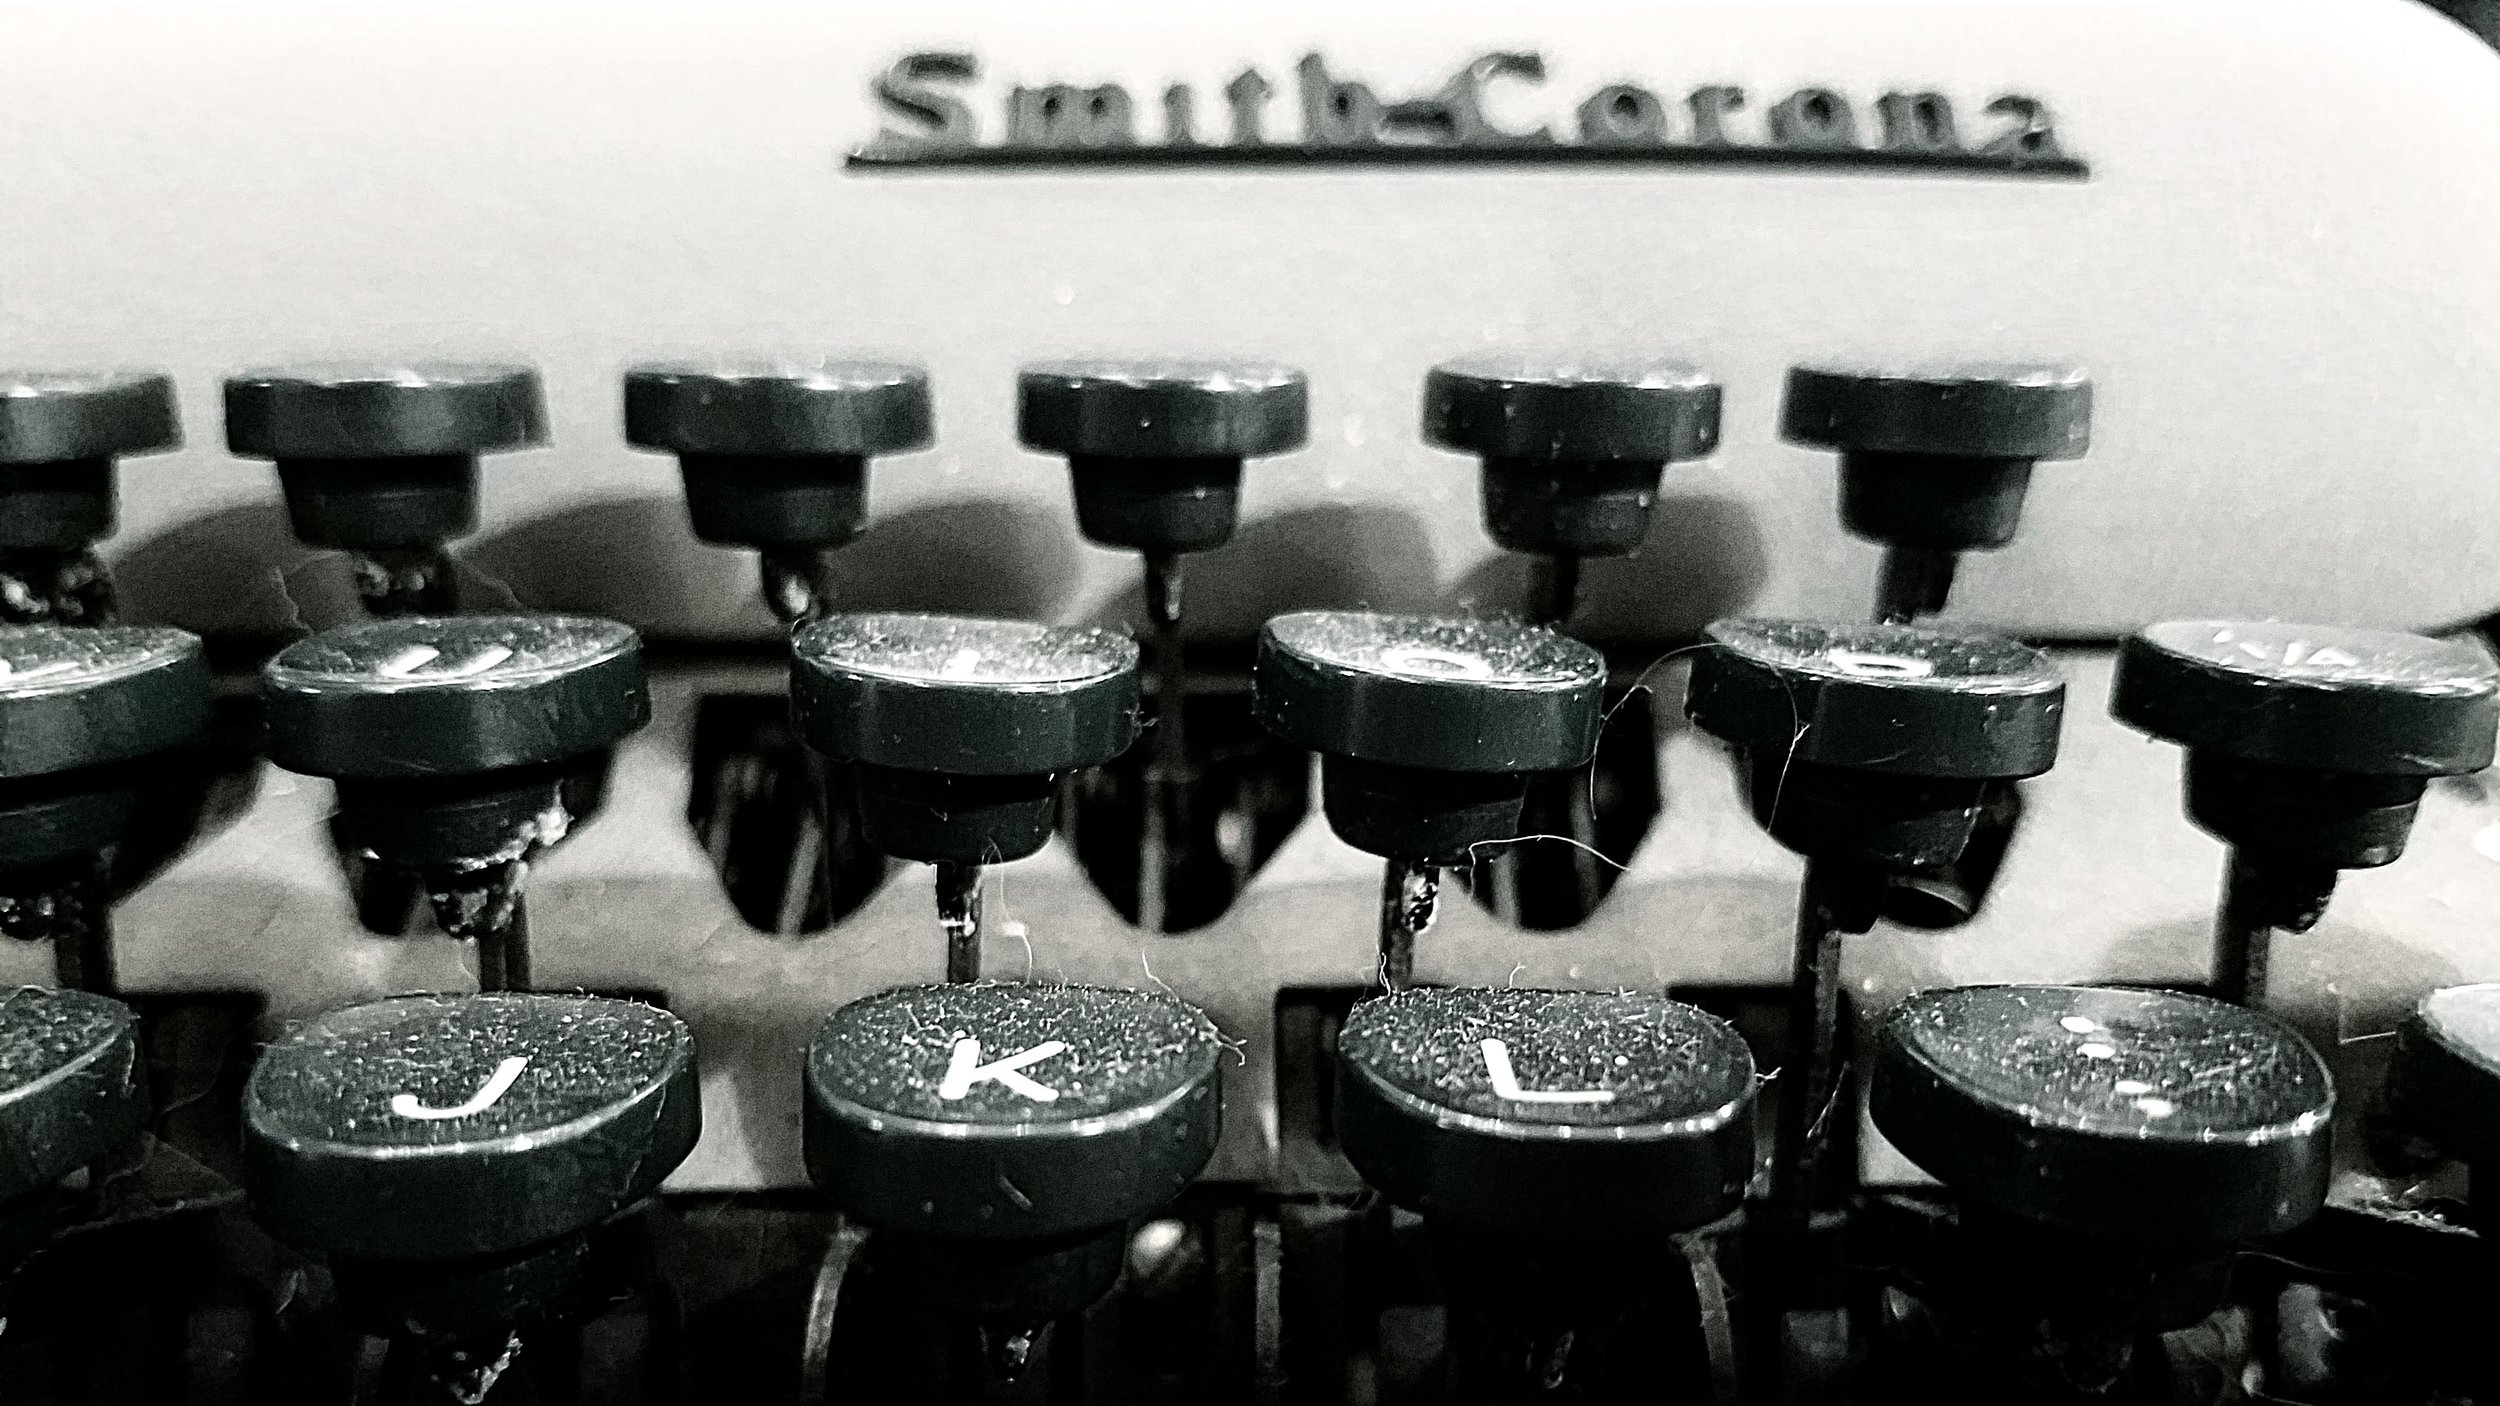 typewriter keys.jpg